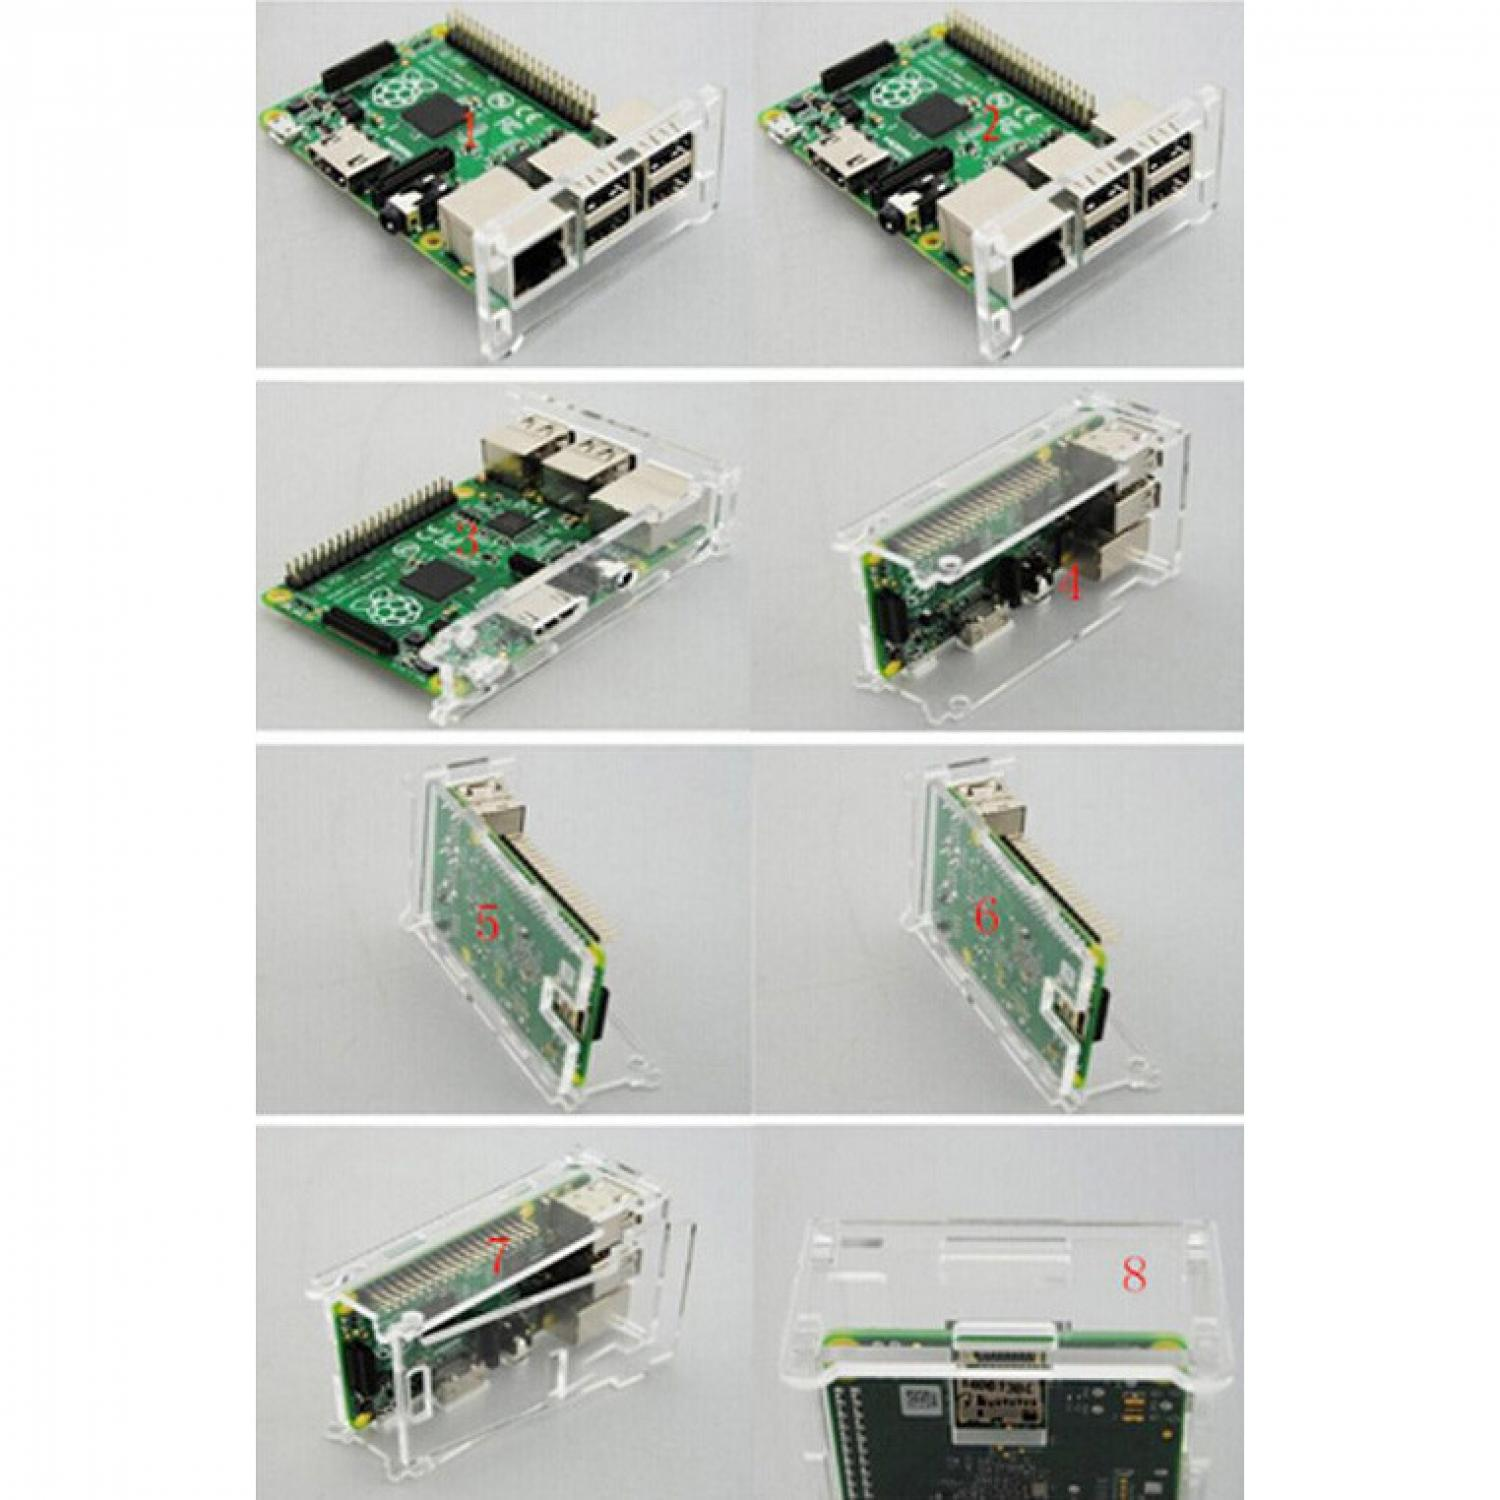 Acrylic Case for Raspberry Pi